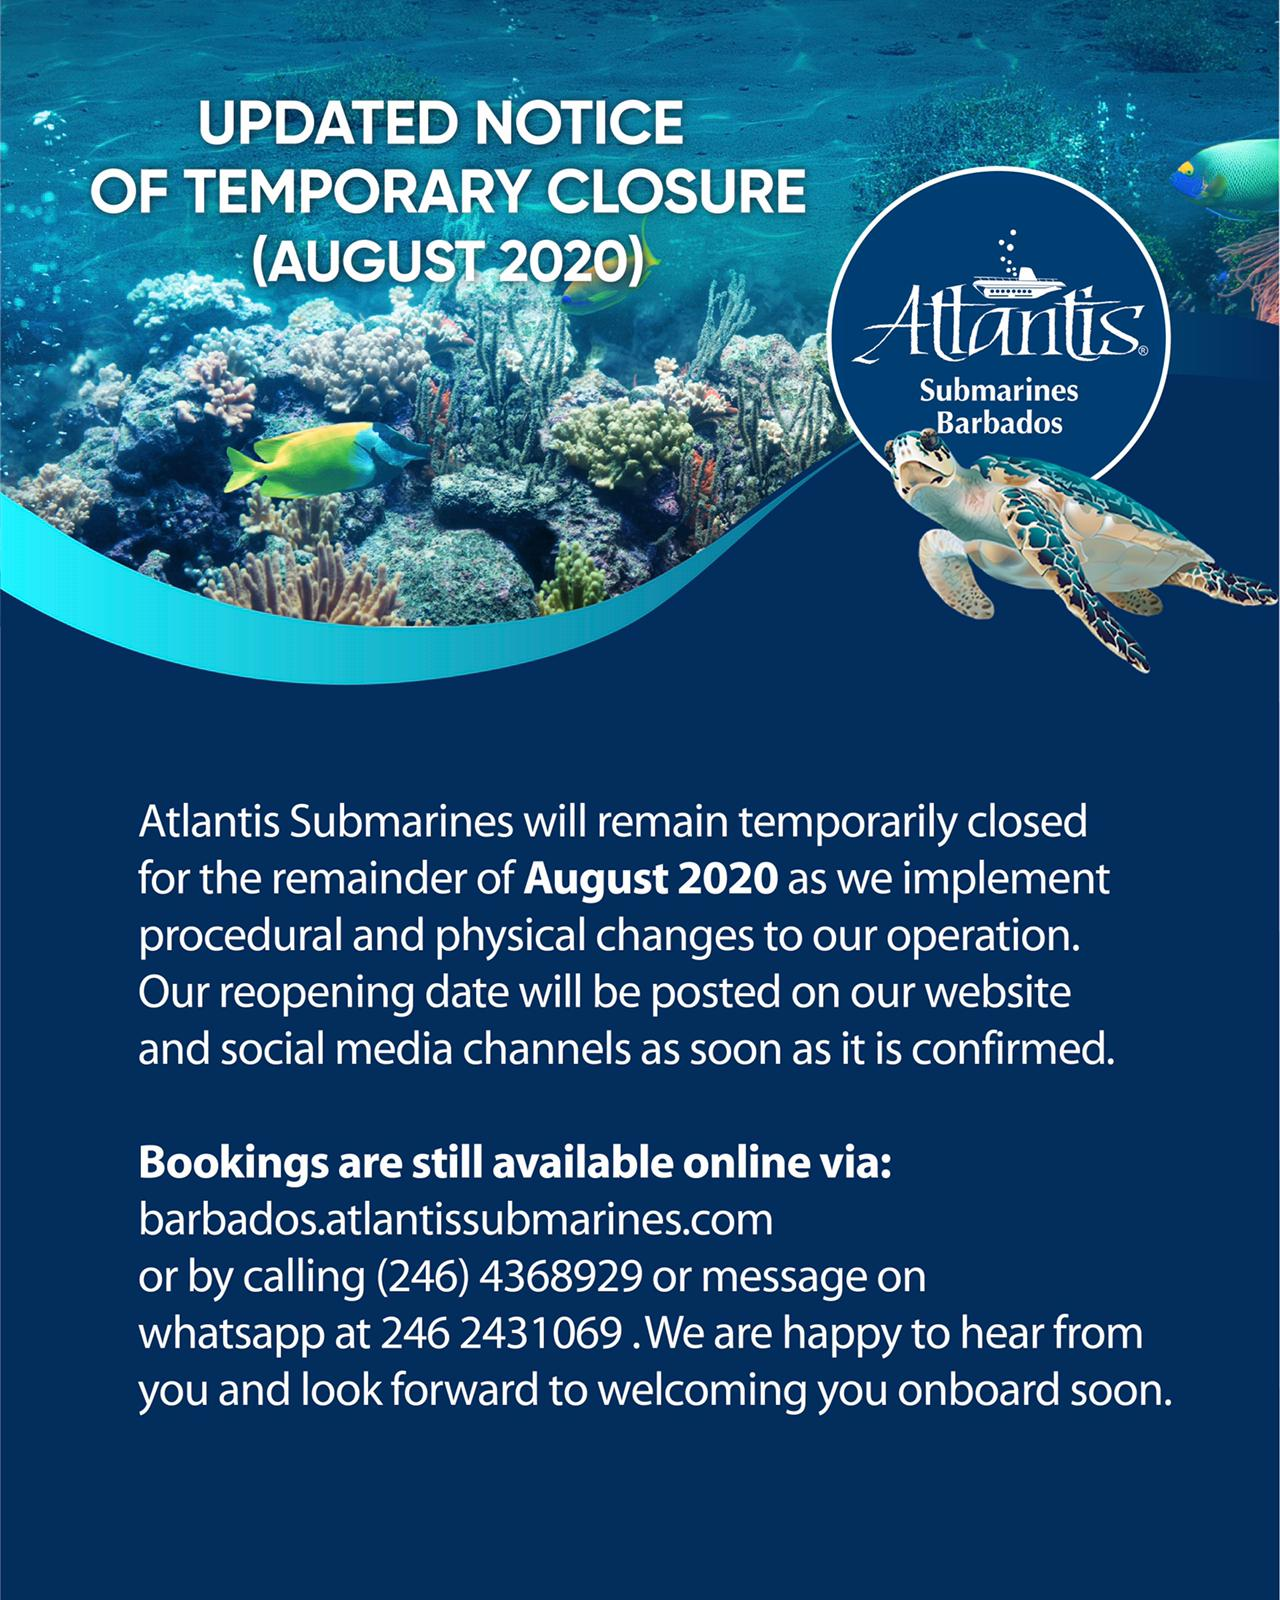 Updated Notice of Temporary Closure (August 2020)